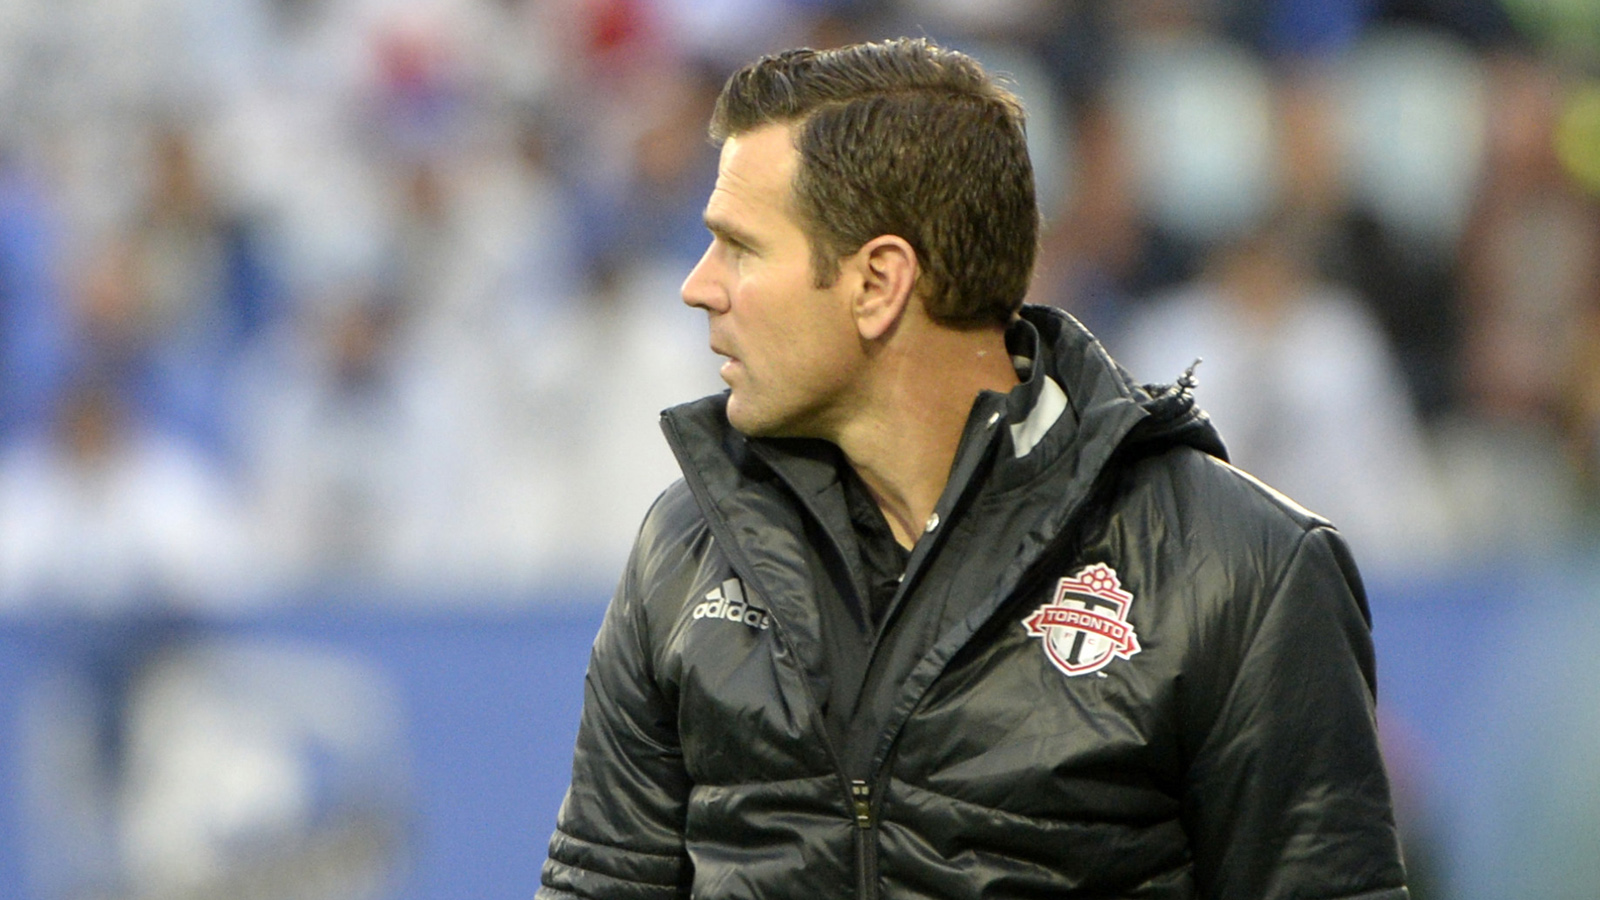 In the shadow of star-studded roster, coach Greg Vanney gets it right for Toronto FC